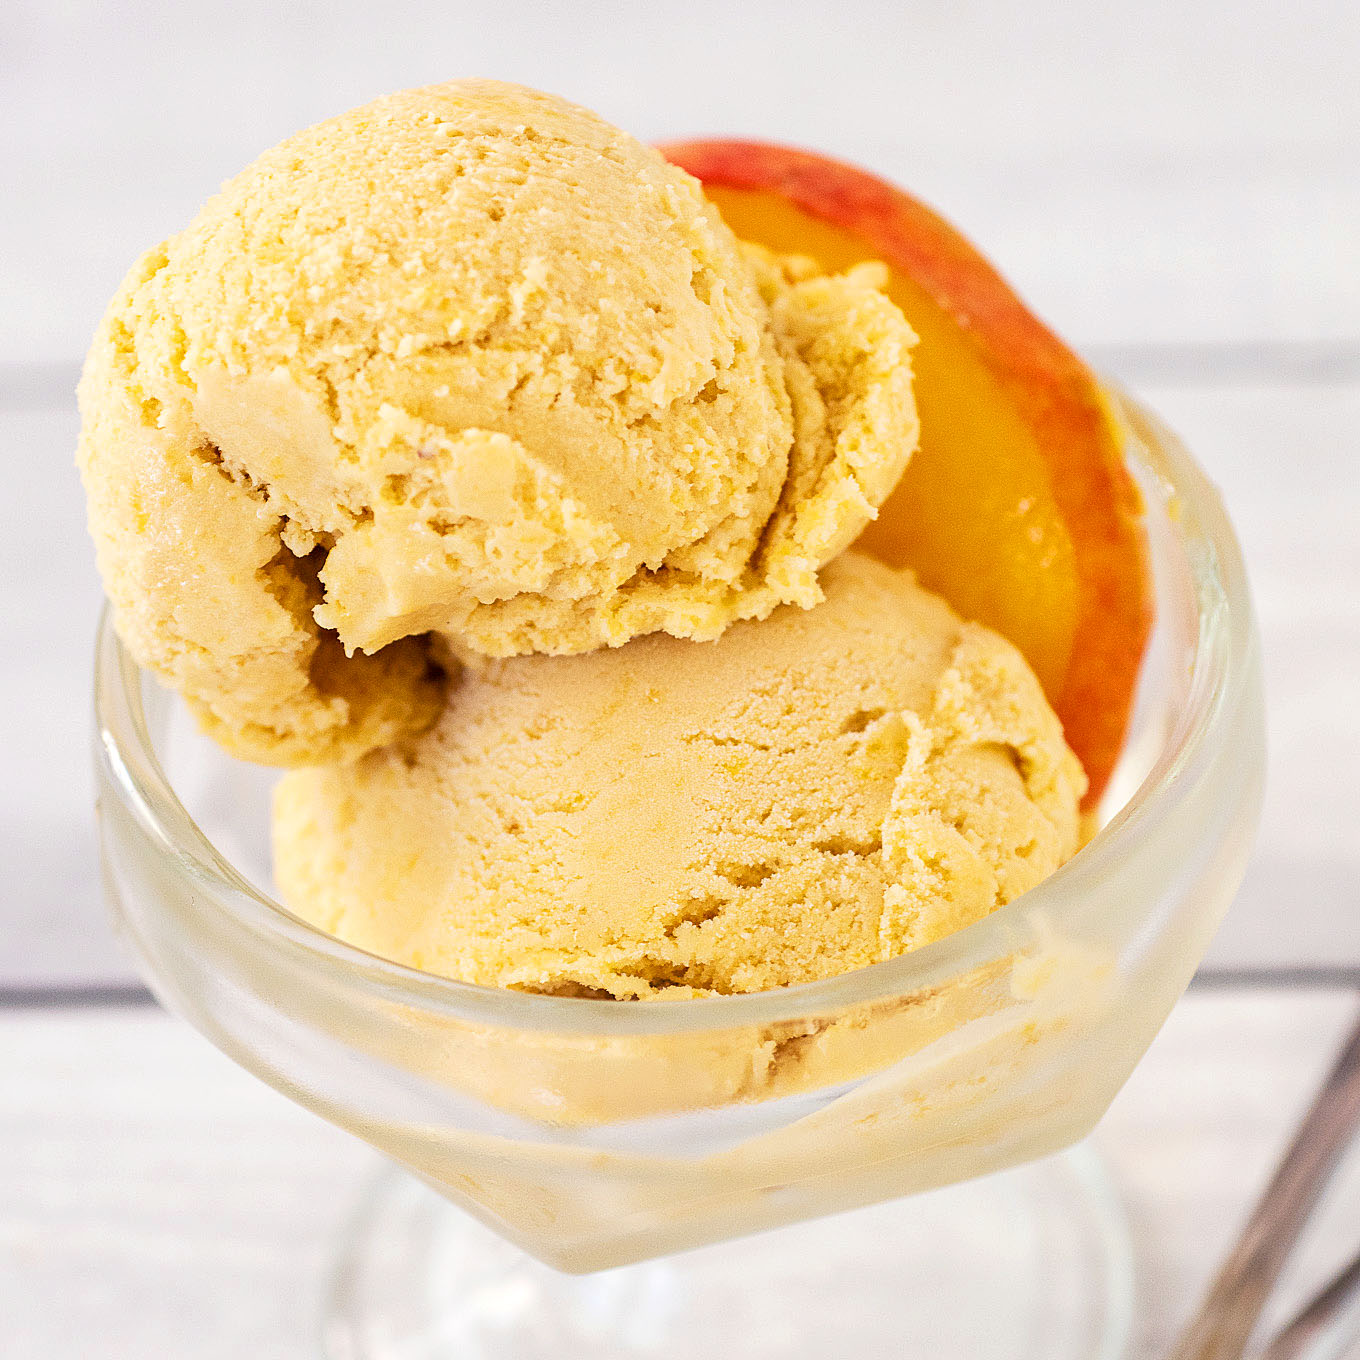 A close-up of two scoops of ice cream in a glass dish with a peach slice